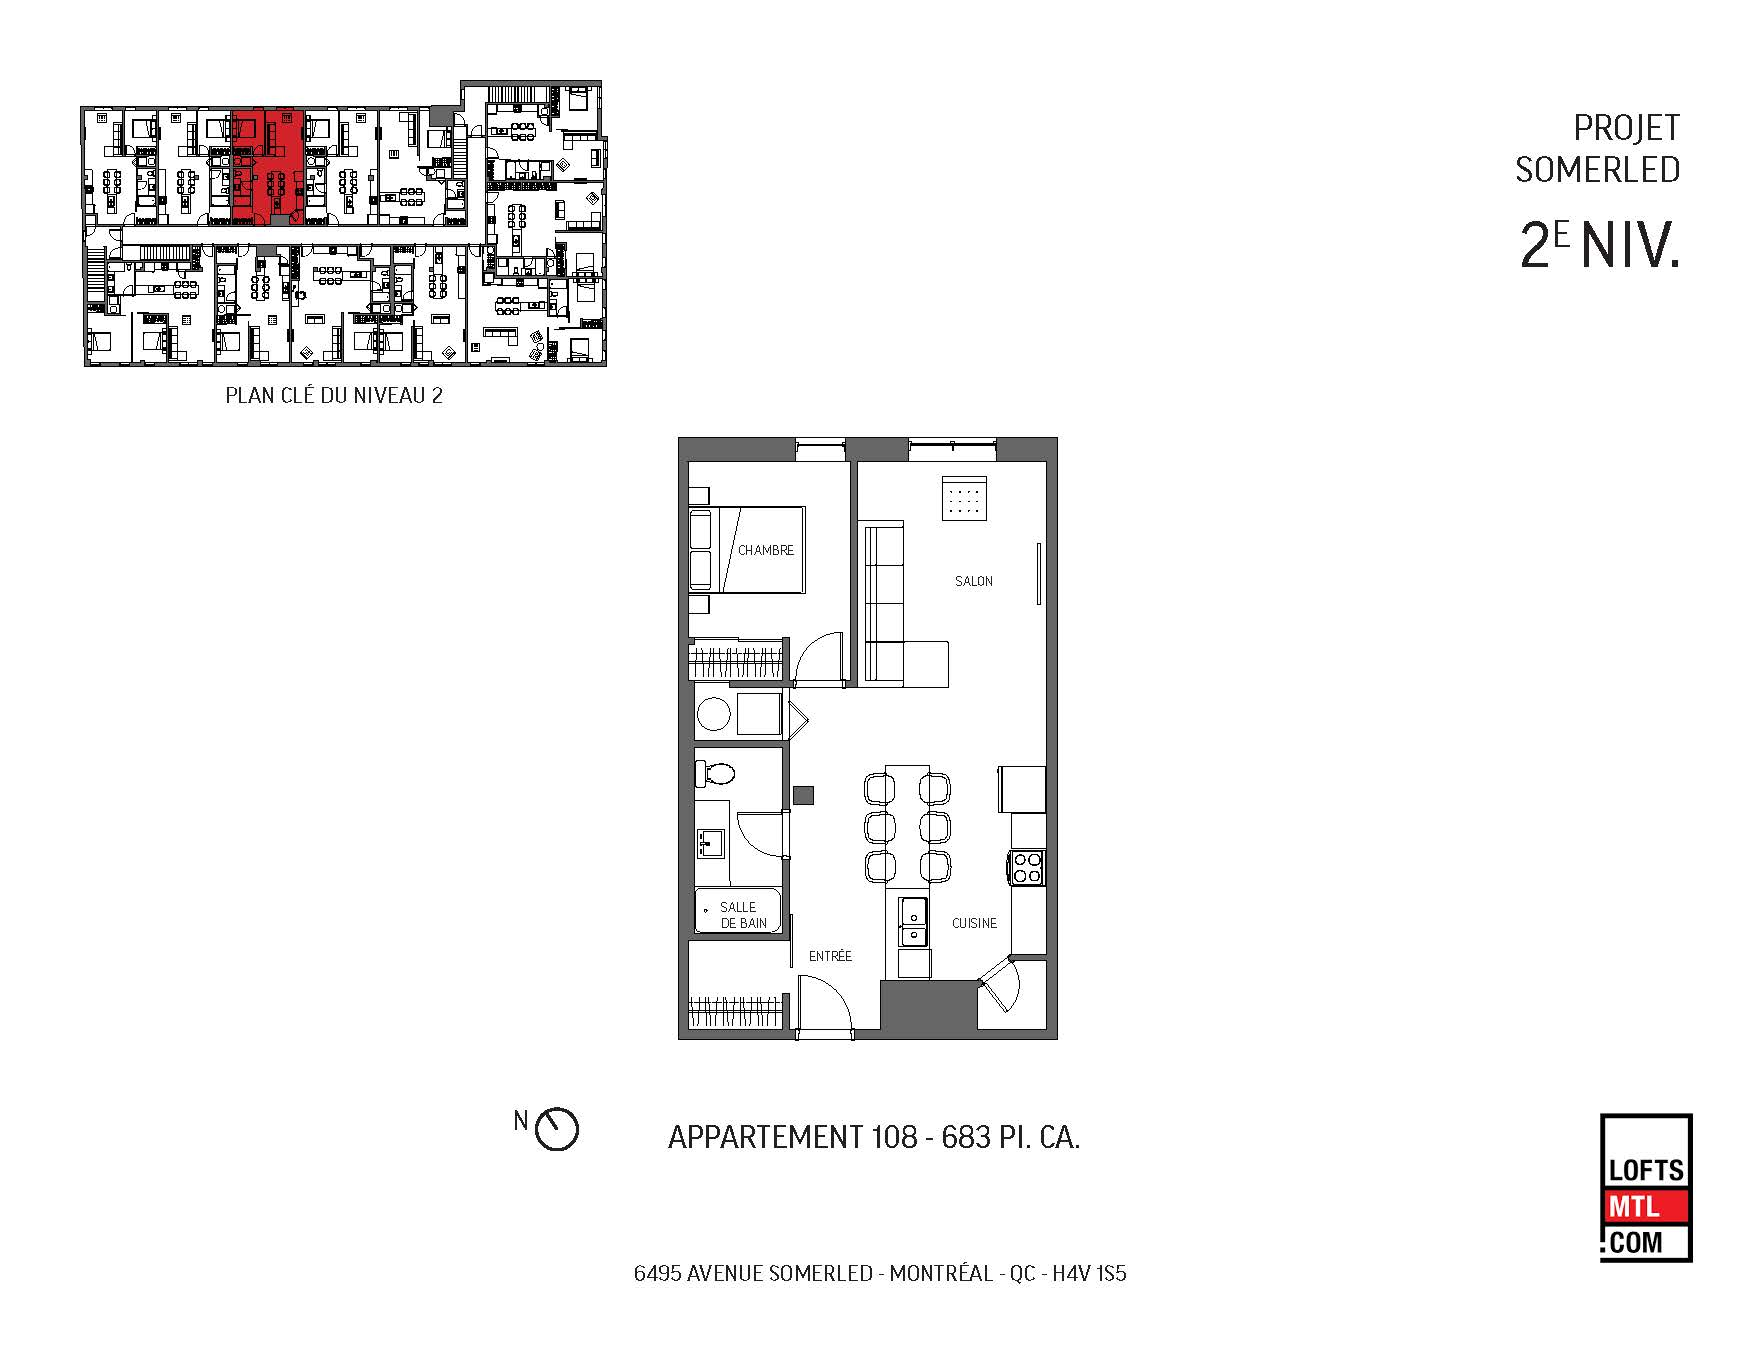 Plans appartements vectoriel Somerled_Page_08.jpg